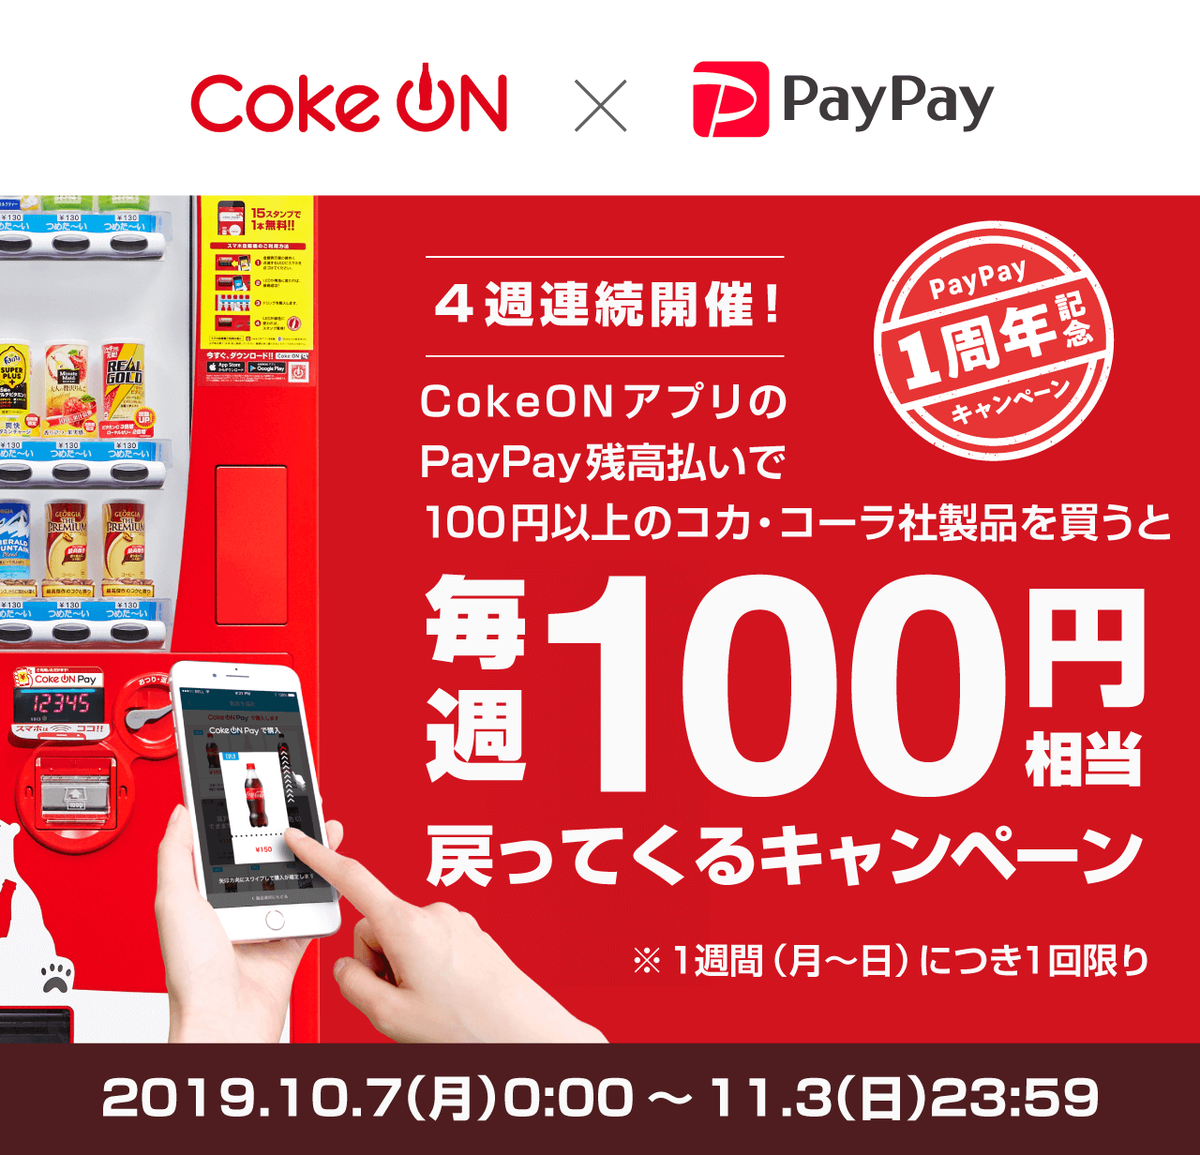 image by https://paypay.ne.jp/event/cokeon/